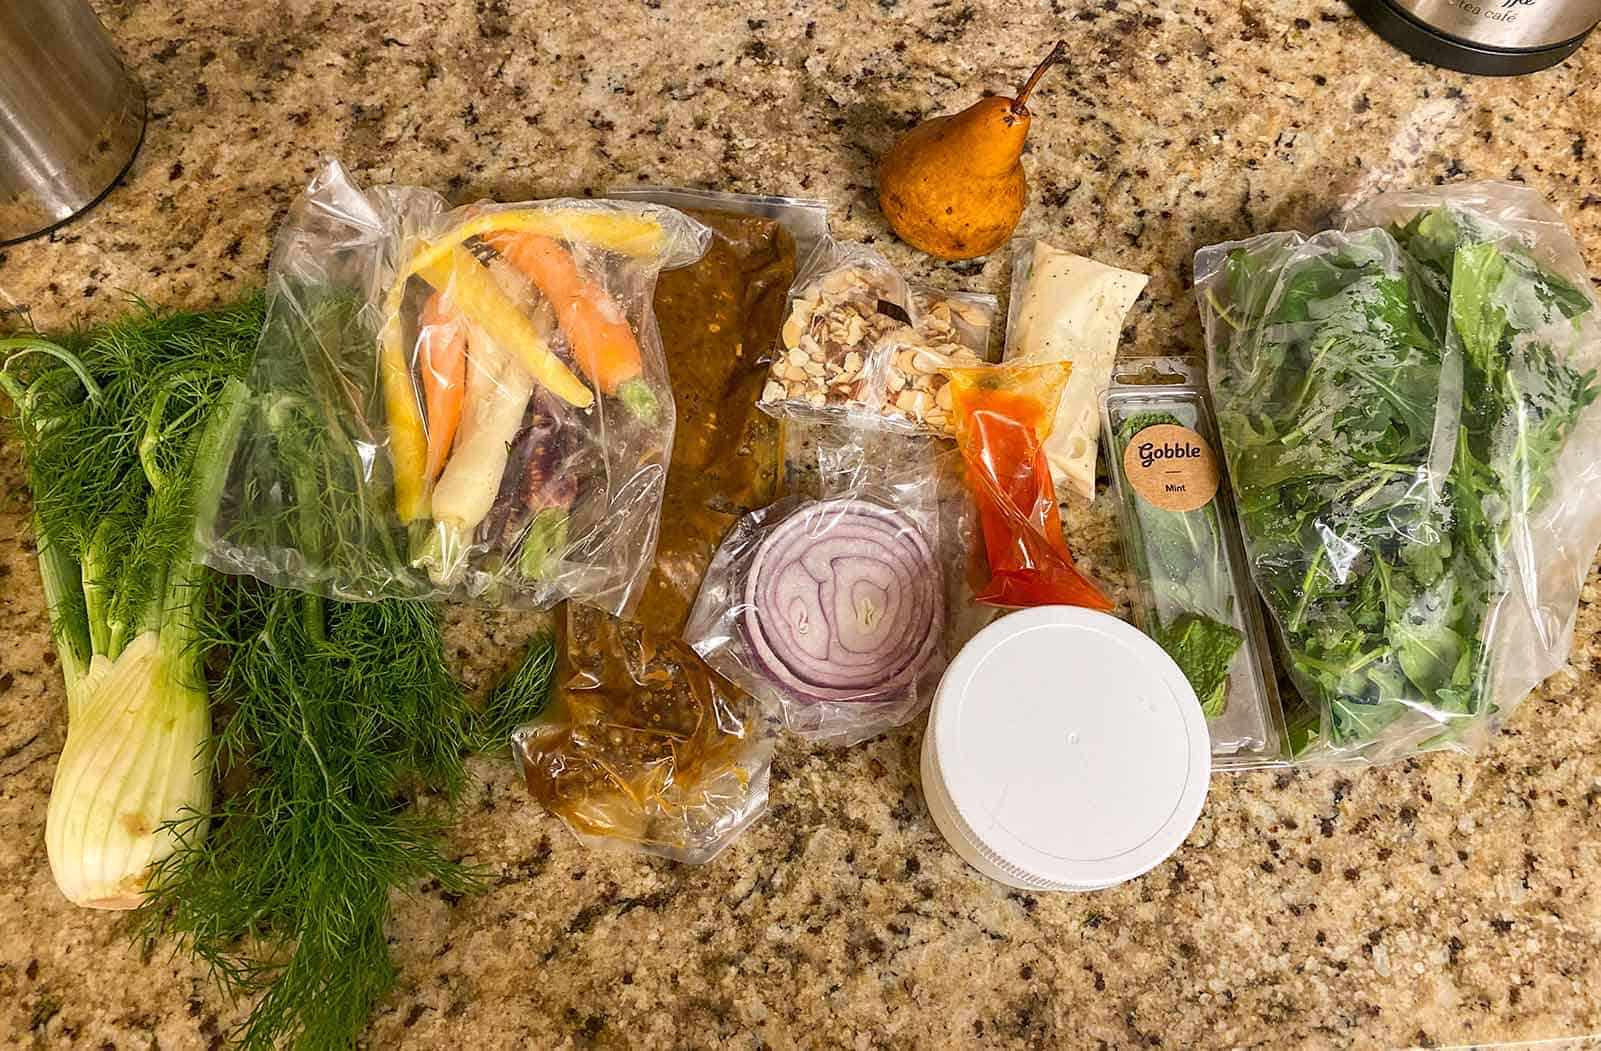 Gobble Meal Kit Delivery Service Review